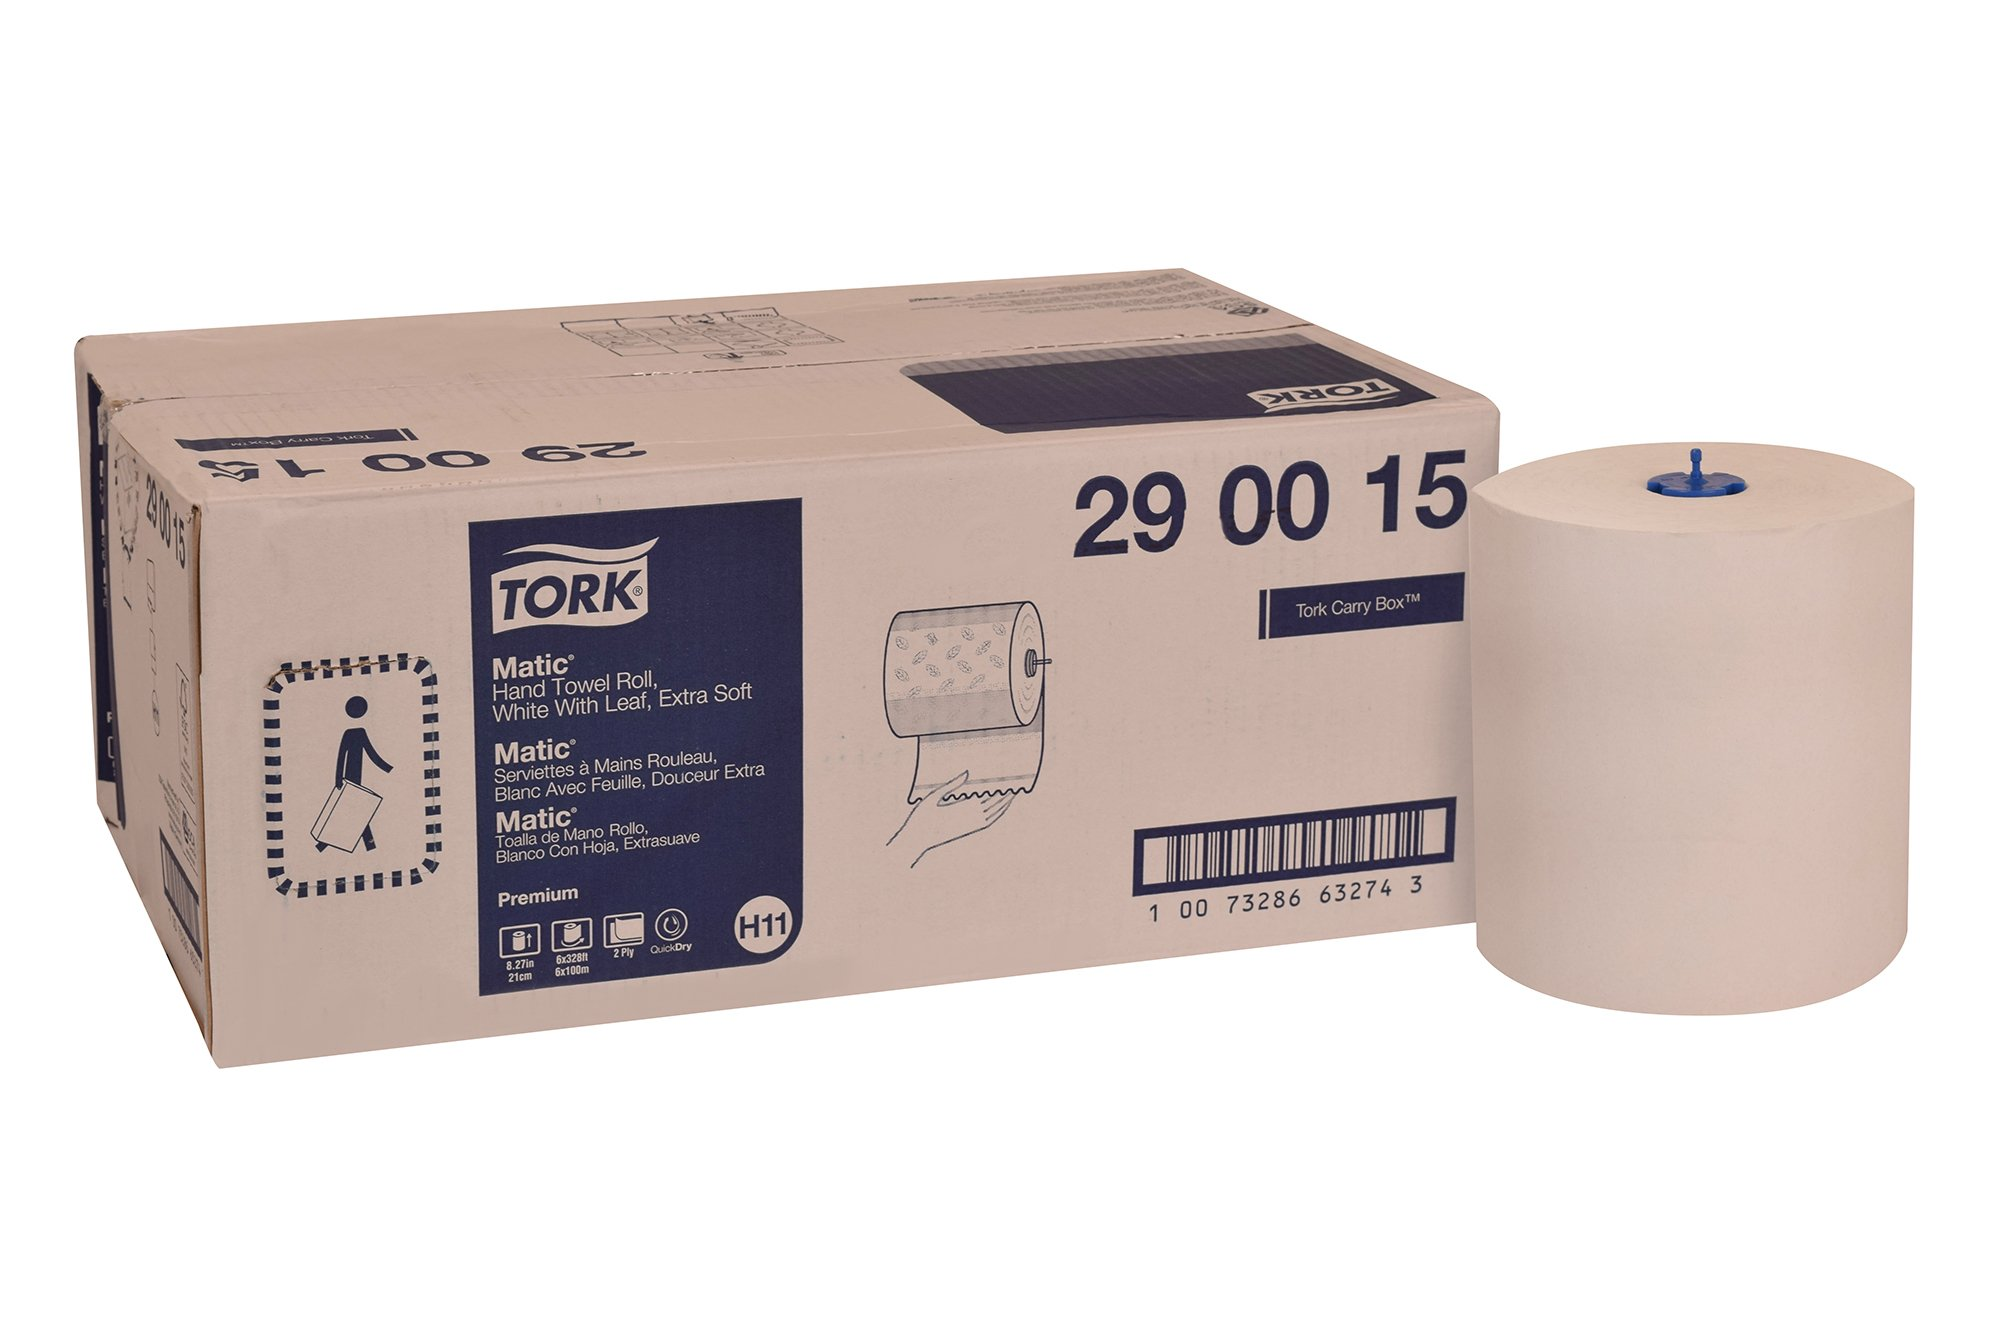 Tork 290015 Premium Extra Soft Matic Paper Hand Towel Roll, 2-Ply, 8.27'' Width x 328' Length, White with Blue Leaf Print (Case of 6 Rolls, 328 Feet per Roll, 1,968 Feet)